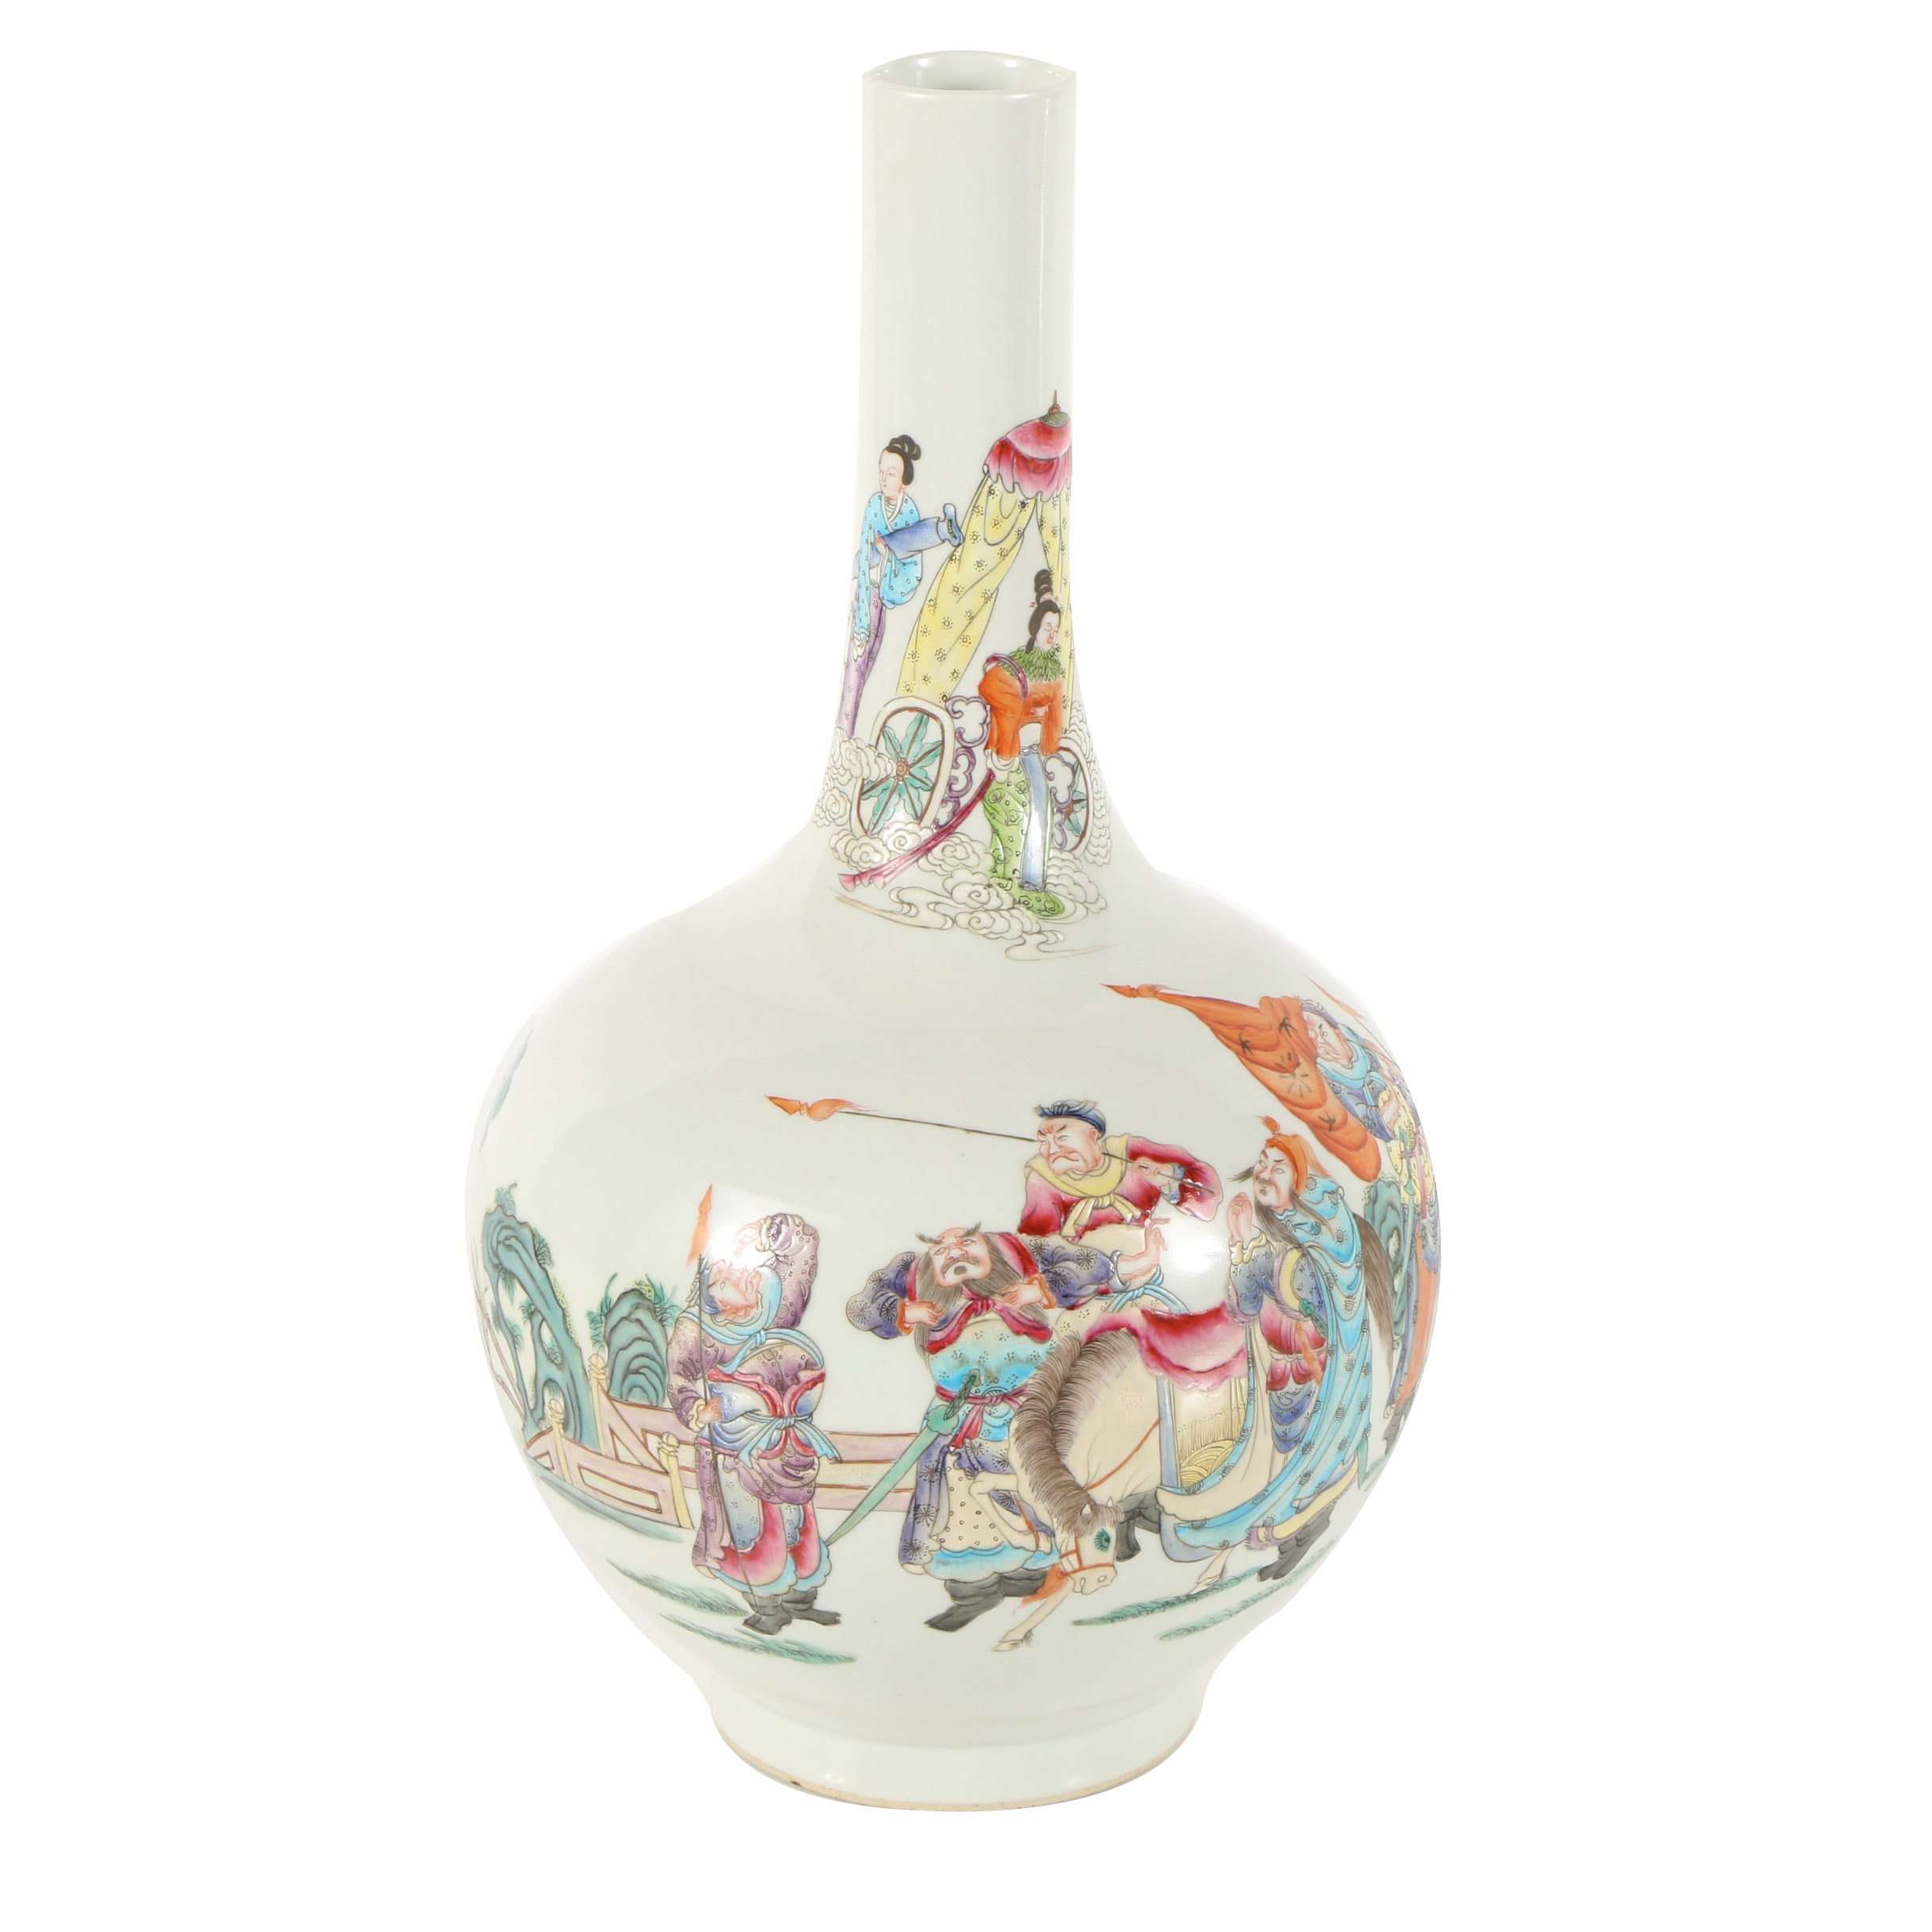 East Asian-Inspired Porcelain Vase with Painted and Engraved Figurative Scene